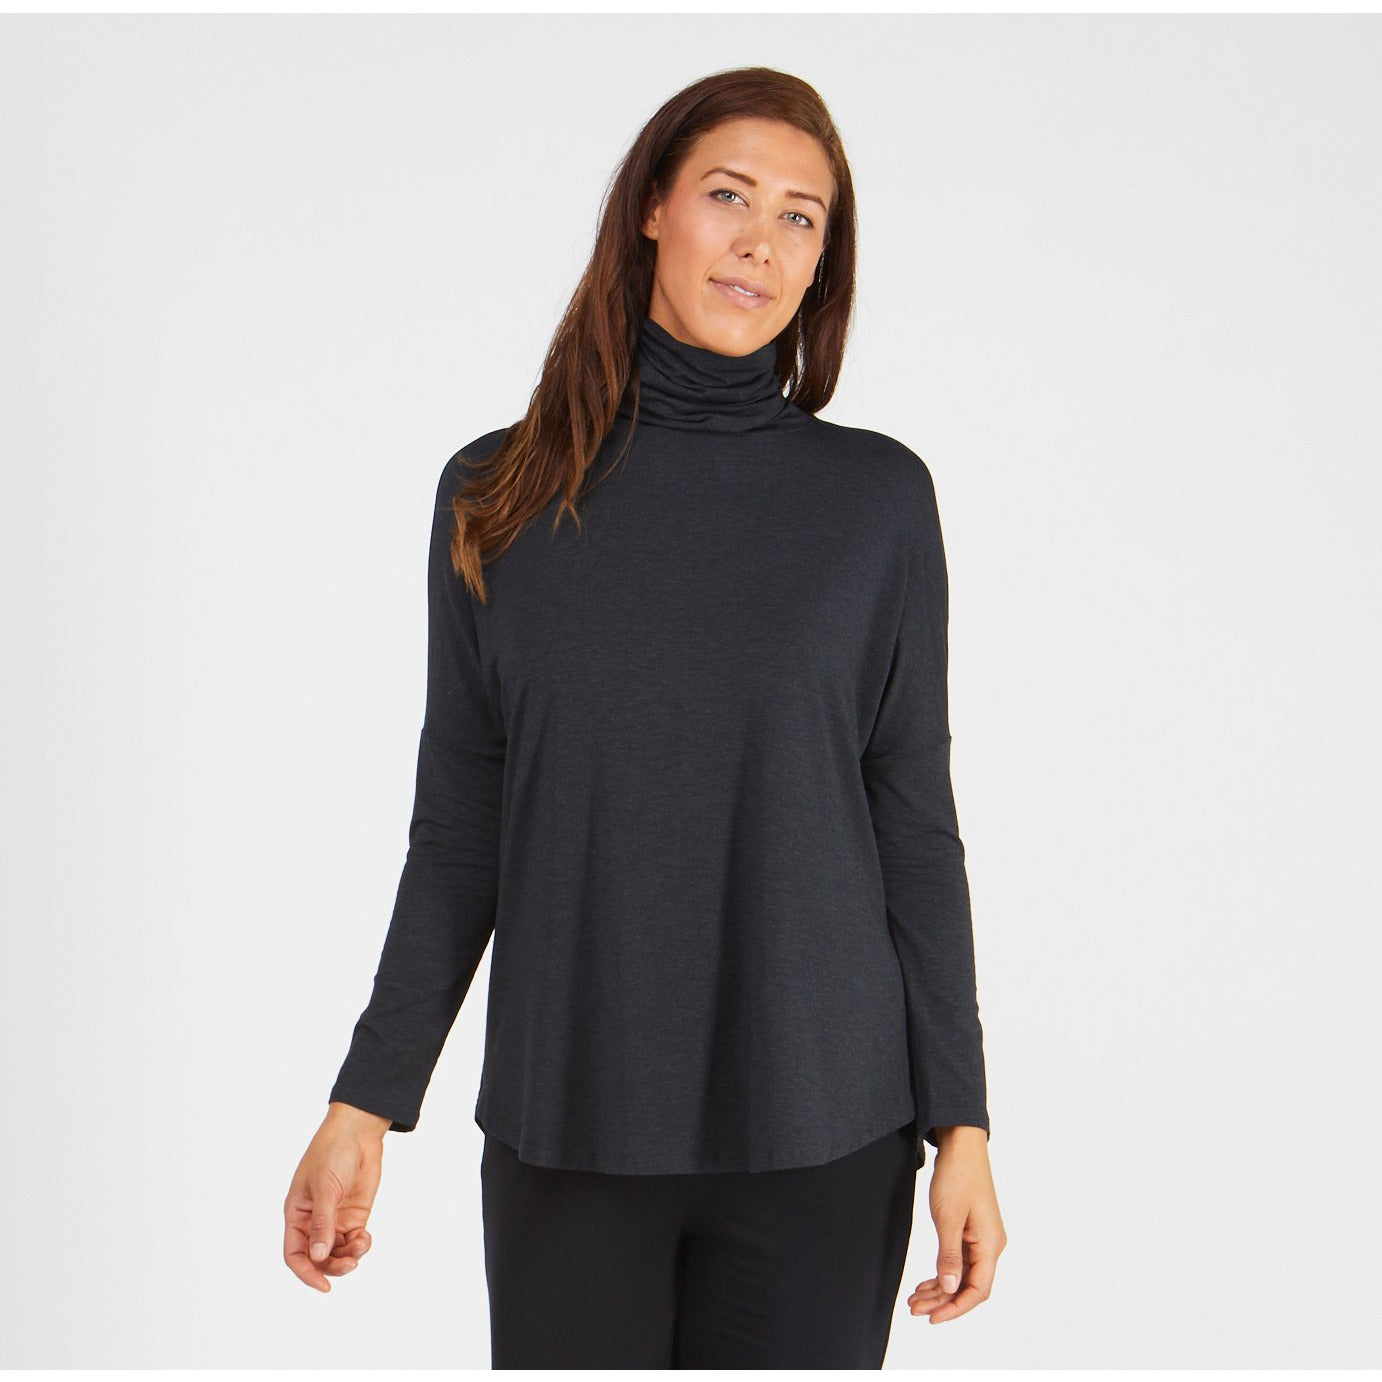 Tani Long Swing Turtle Neck Top in Graphite Marle